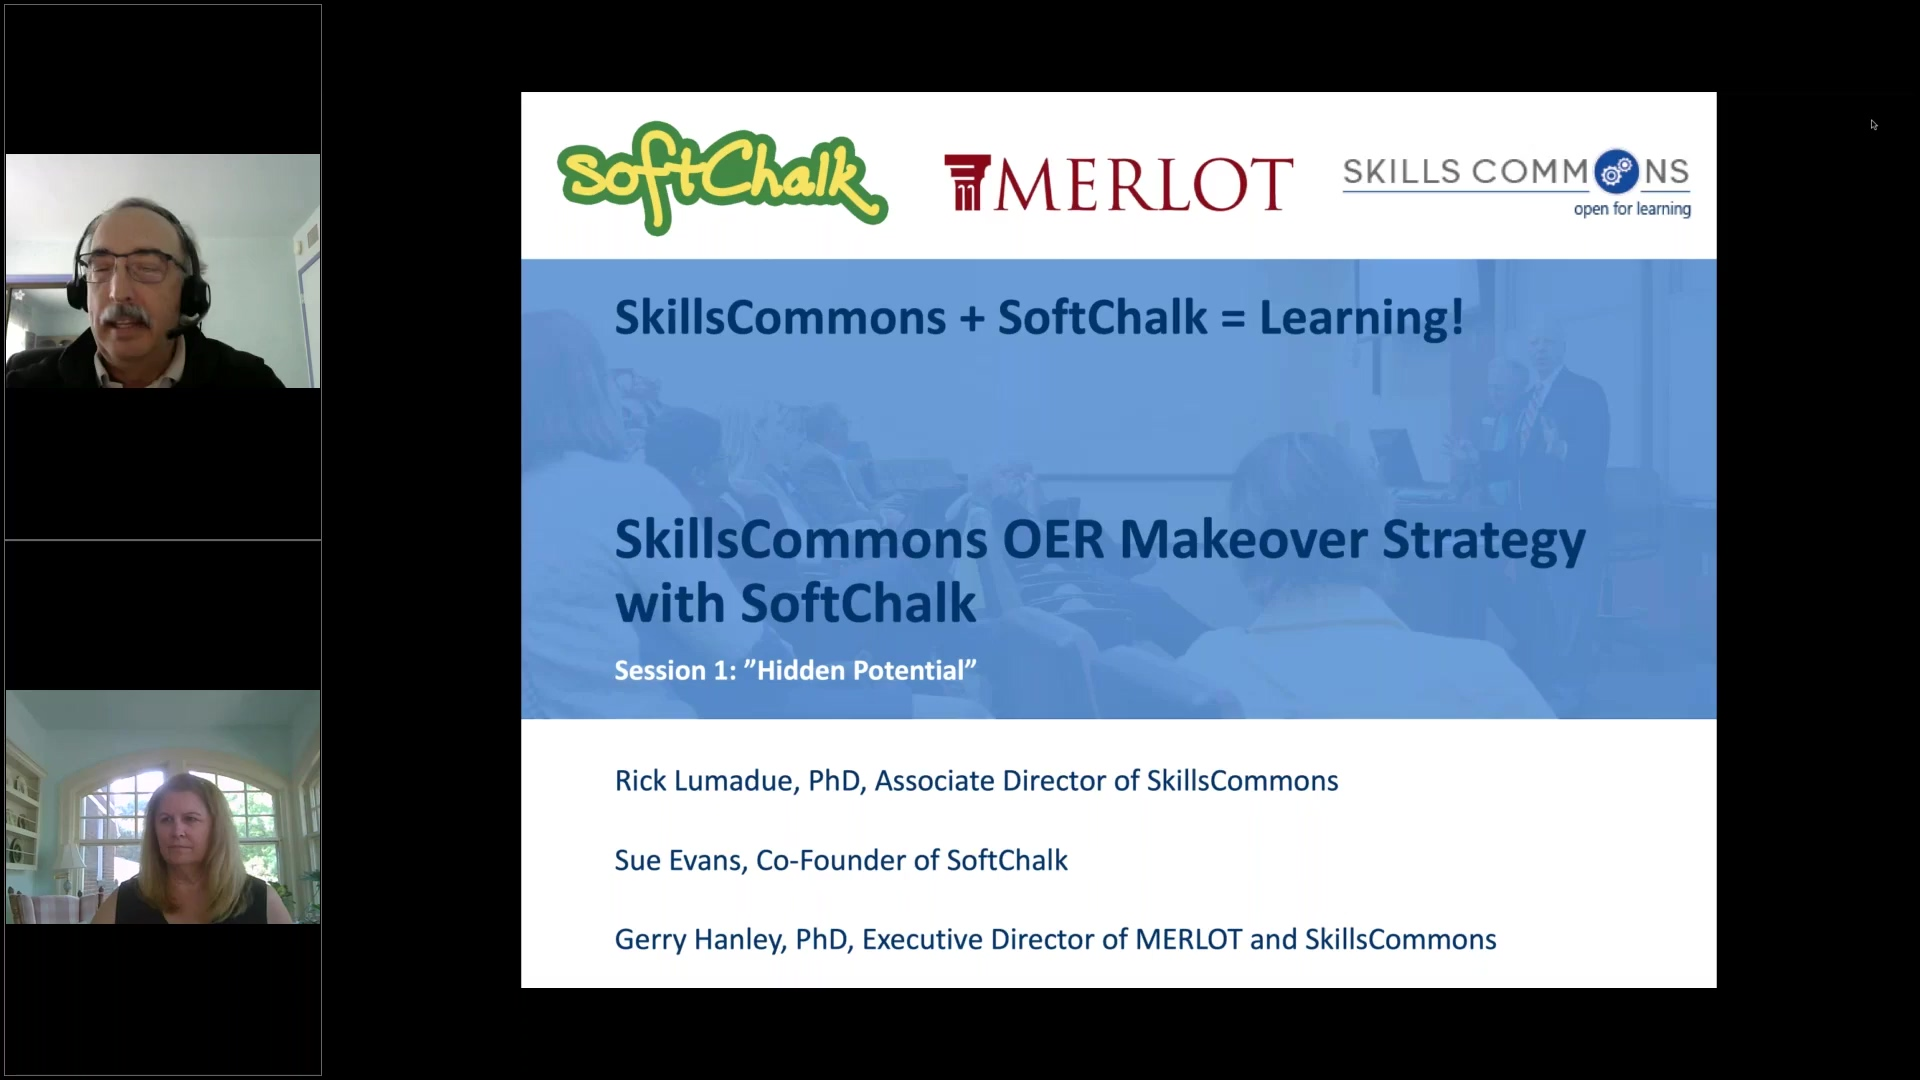 SkillsCommons OER Makeover Strategy with SoftChalk